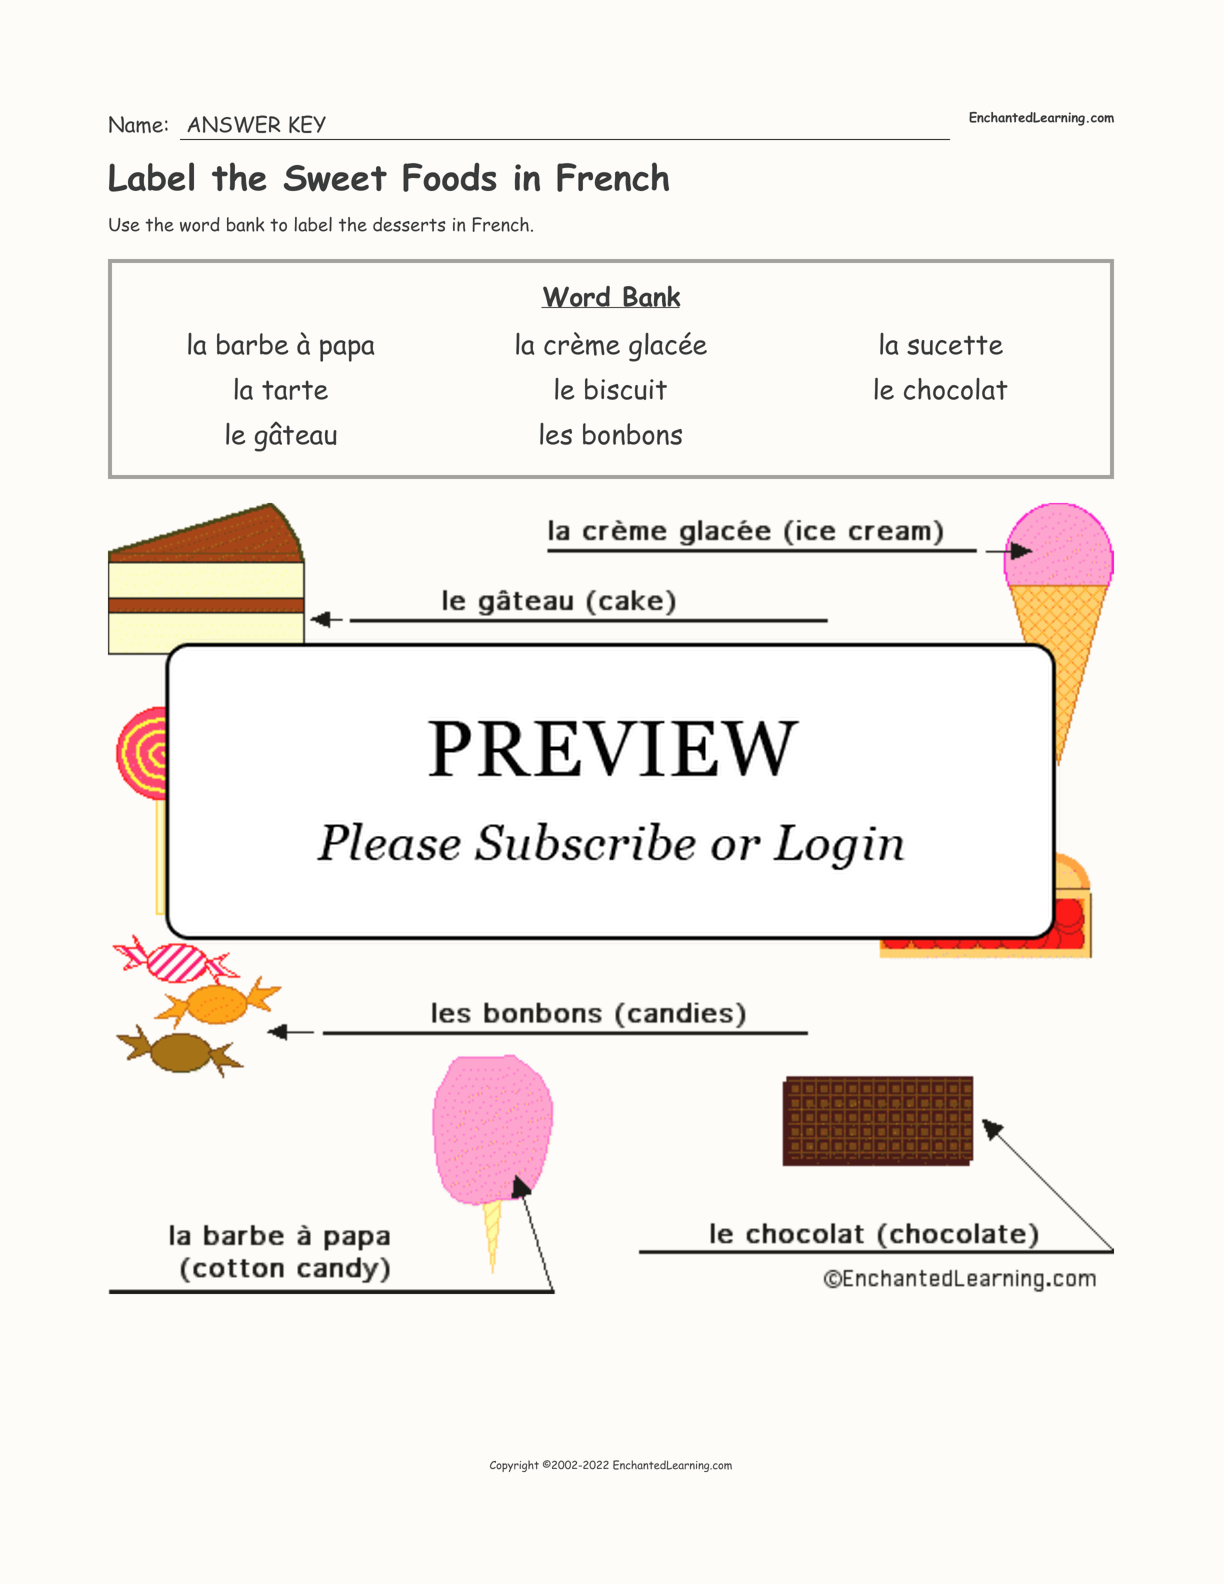 Label the Sweet Foods in French interactive worksheet page 2